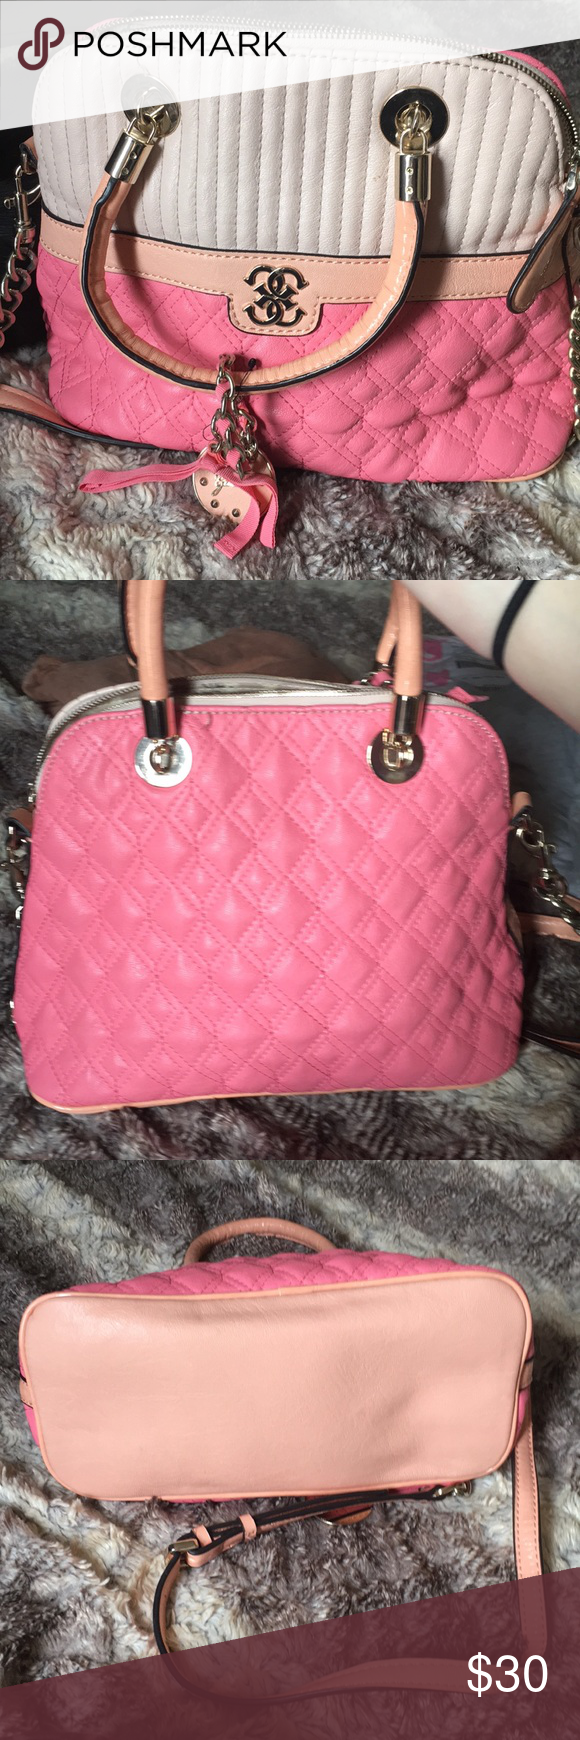 b563b9bdf21 Guess purse Very cute and girly guess purse. Overall great, like new  condition with only a couple loose strings. Baby pink peach watermelon  colors Guess ...